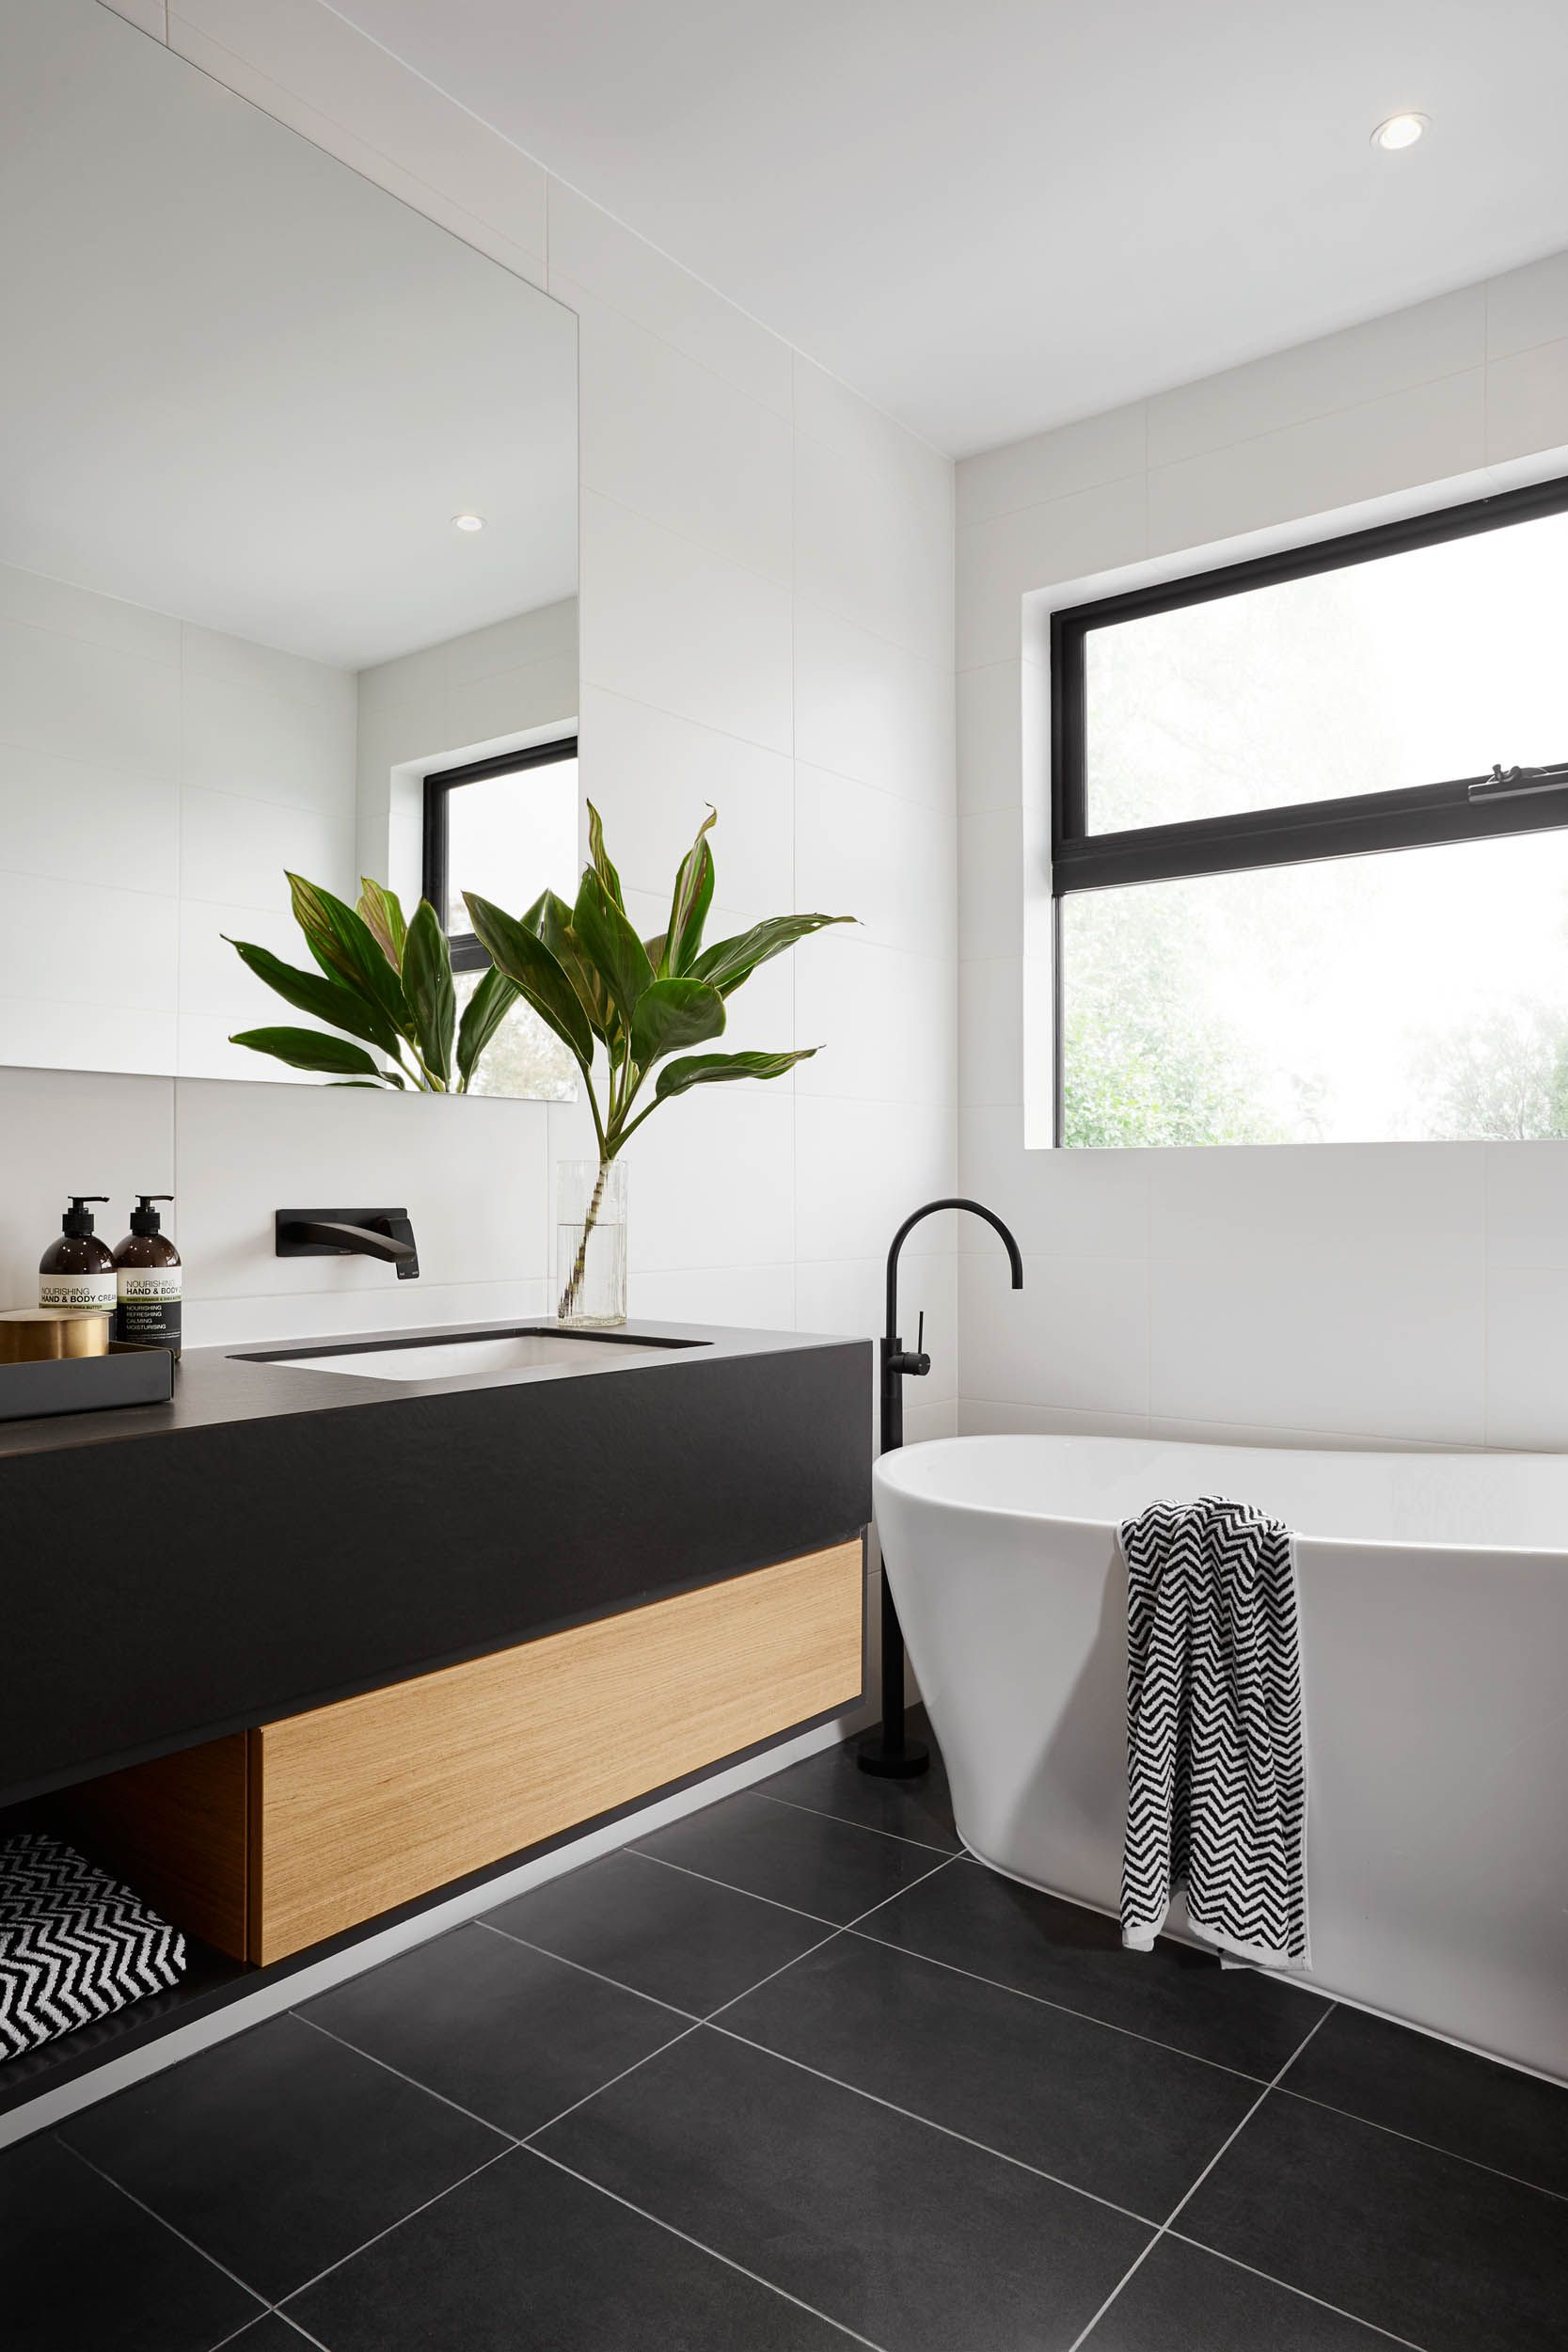 Modern black and white bathroom with black tile   matte black plumbing  fixturesModern black and white bathroom with black tile   matte black  . Black And White Bathrooms Images. Home Design Ideas